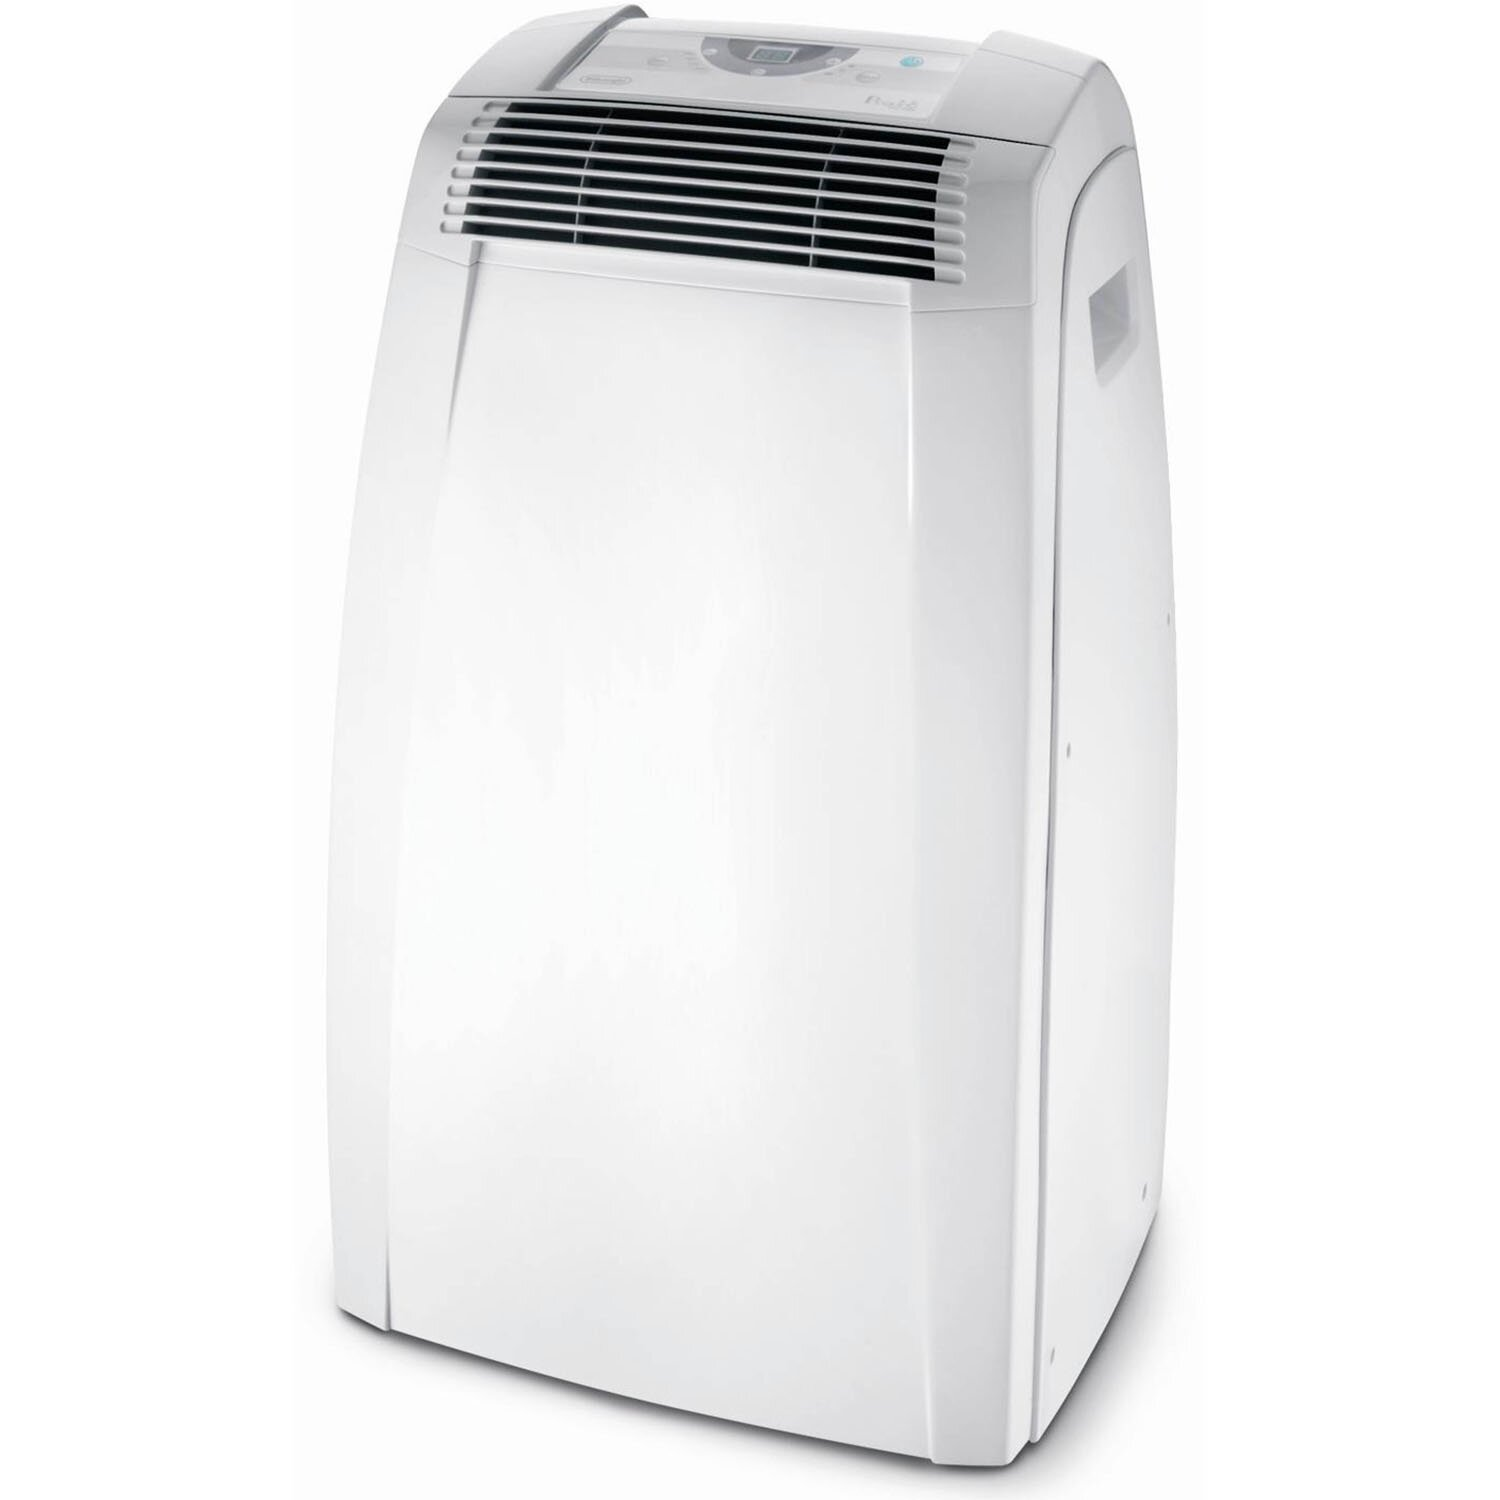 Series 12 000 BTU Portable Air Conditioner with Remote by DeLonghi #131719